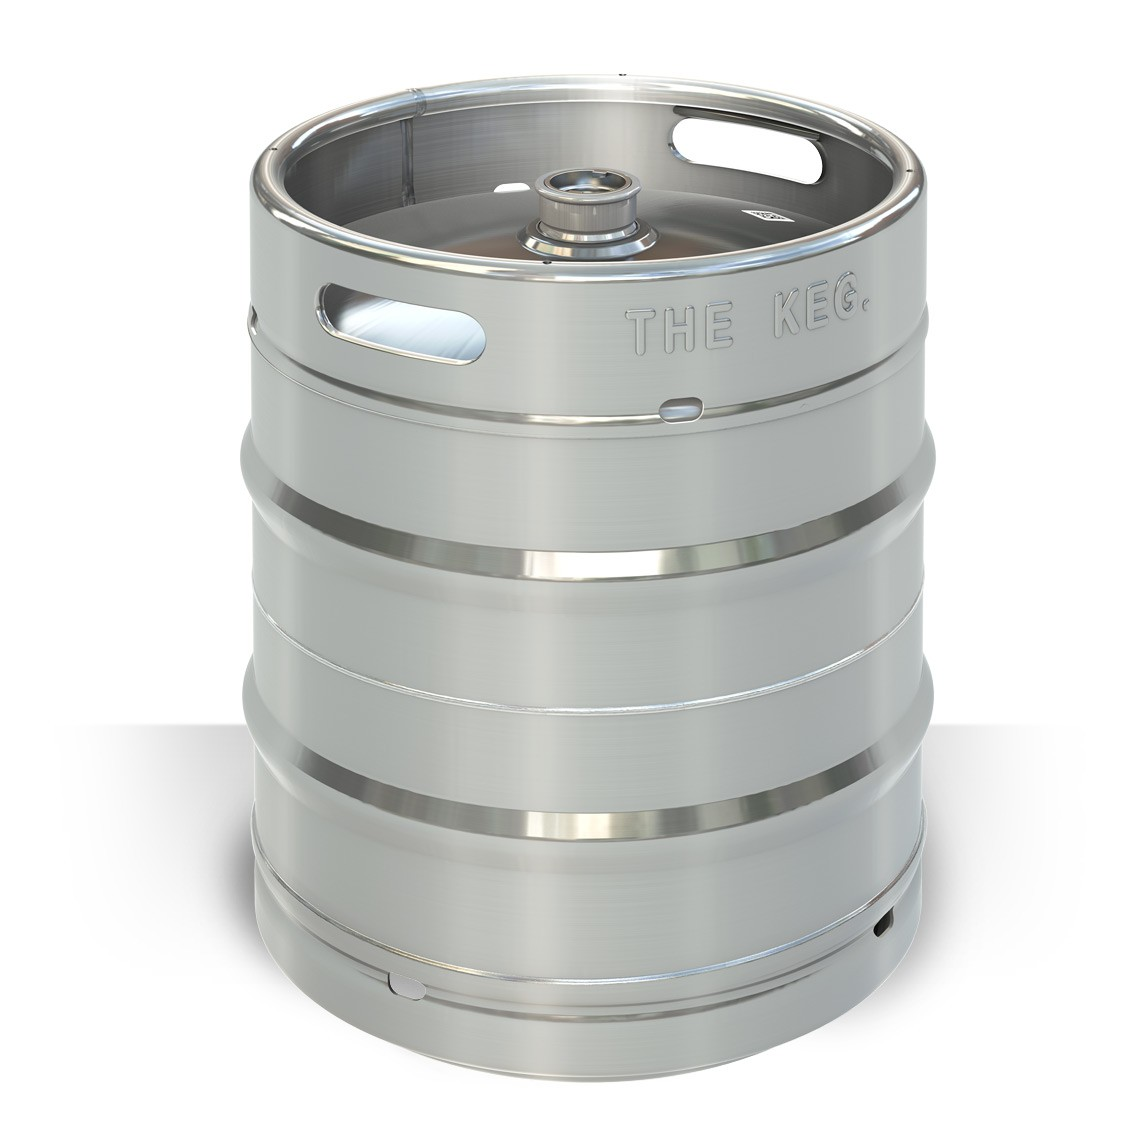 blefa kegs stainless steel kegs100% steel kegs from blefa beverage systems